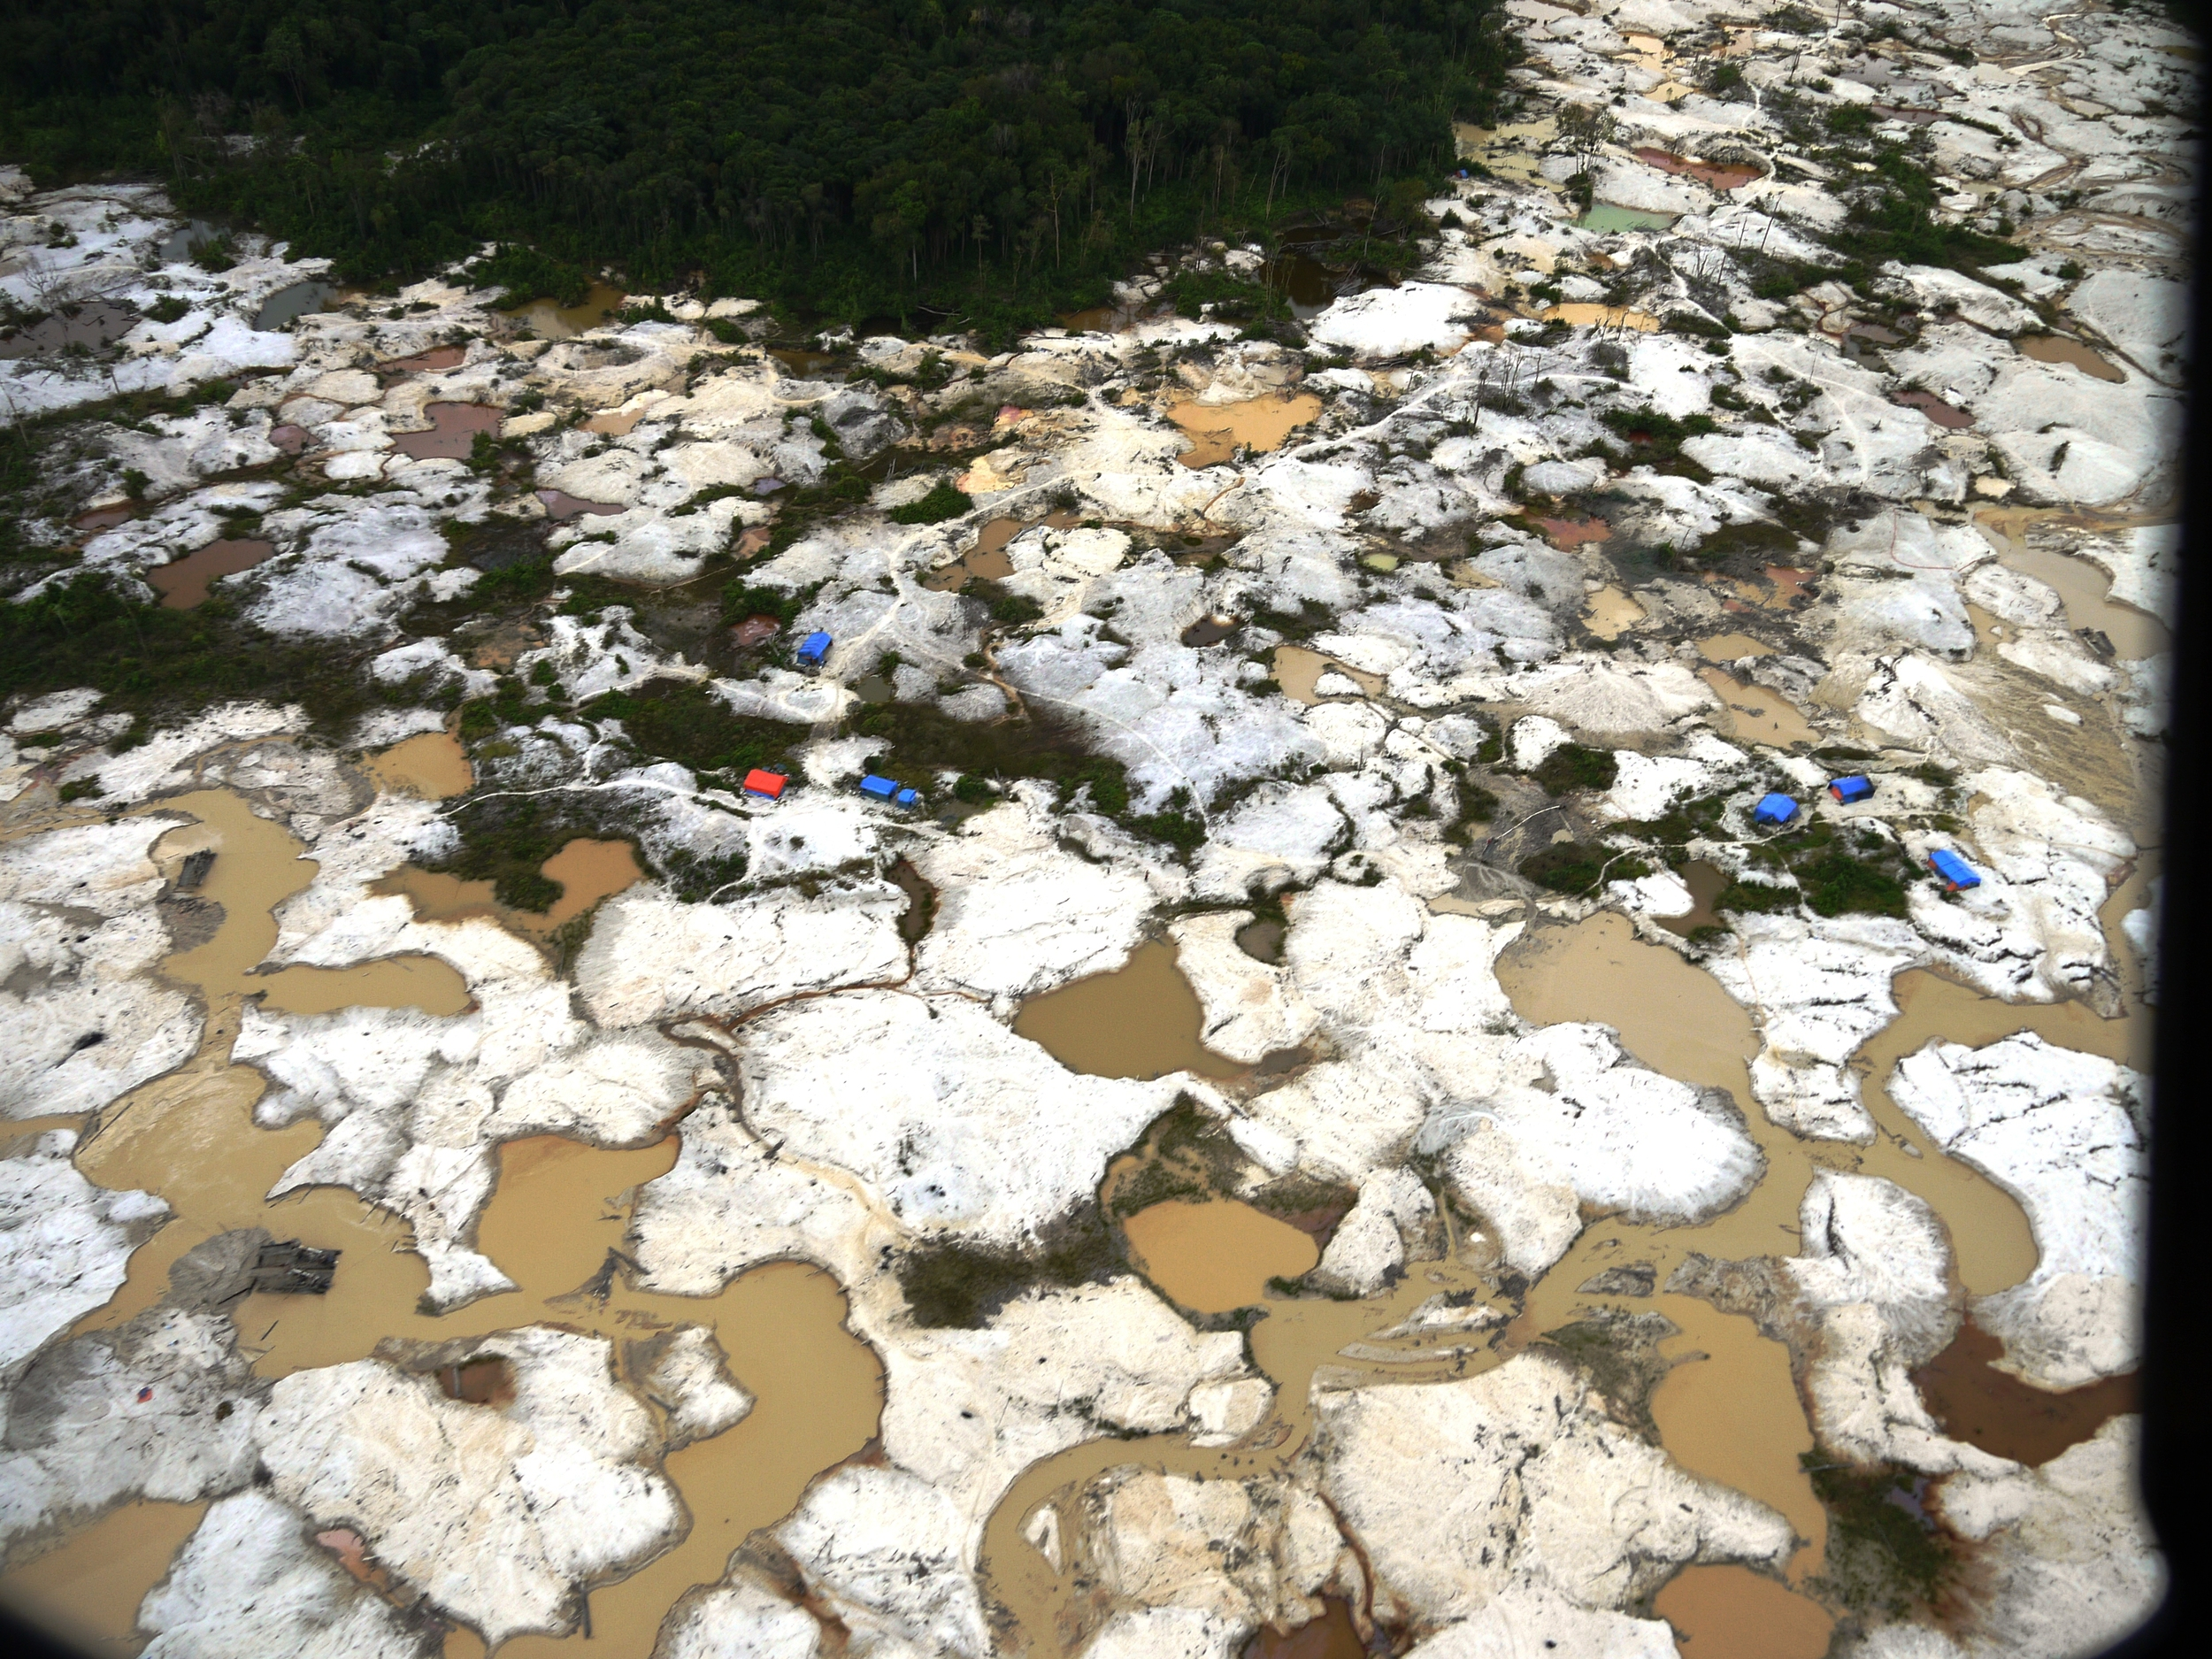 Moonscape... aftermath of illegal gold mining in Sumatra, Indonesia  (photo by William Laurance )